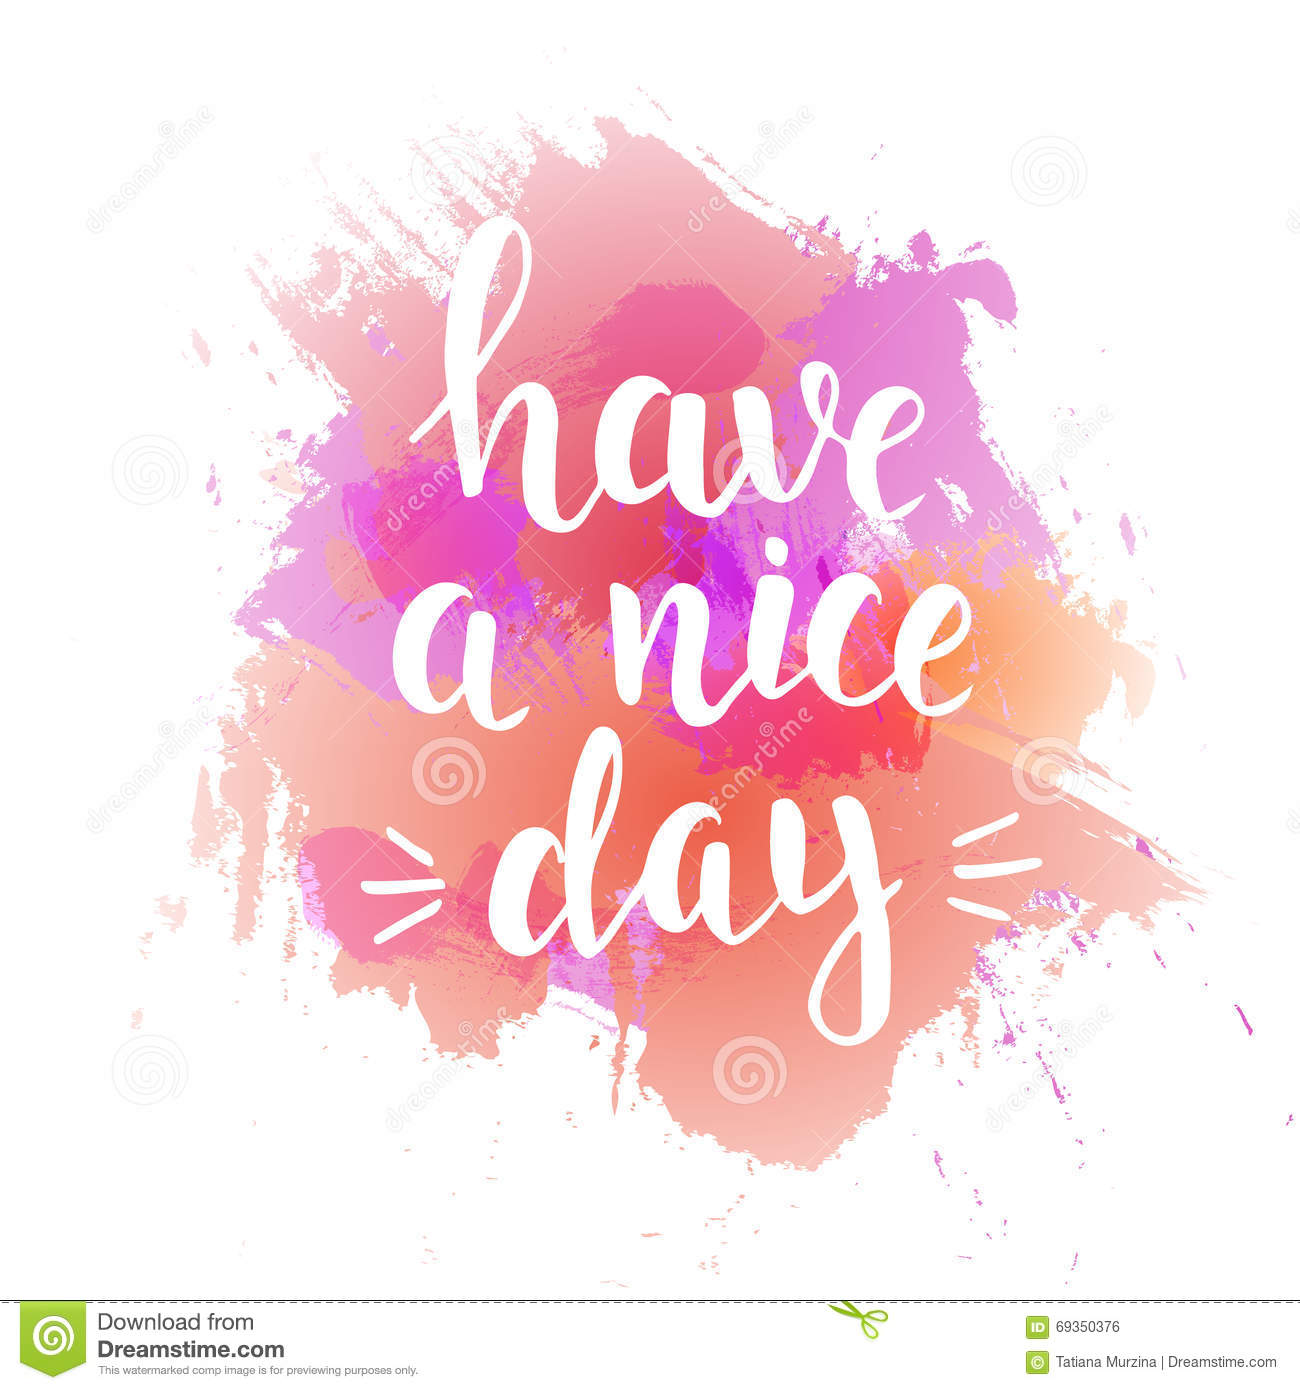 a nice day Goodbye usage notes have a nice day is used as a salutation similar in meaning to goodbye have a nice day is a commonly spoken valediction, typically.